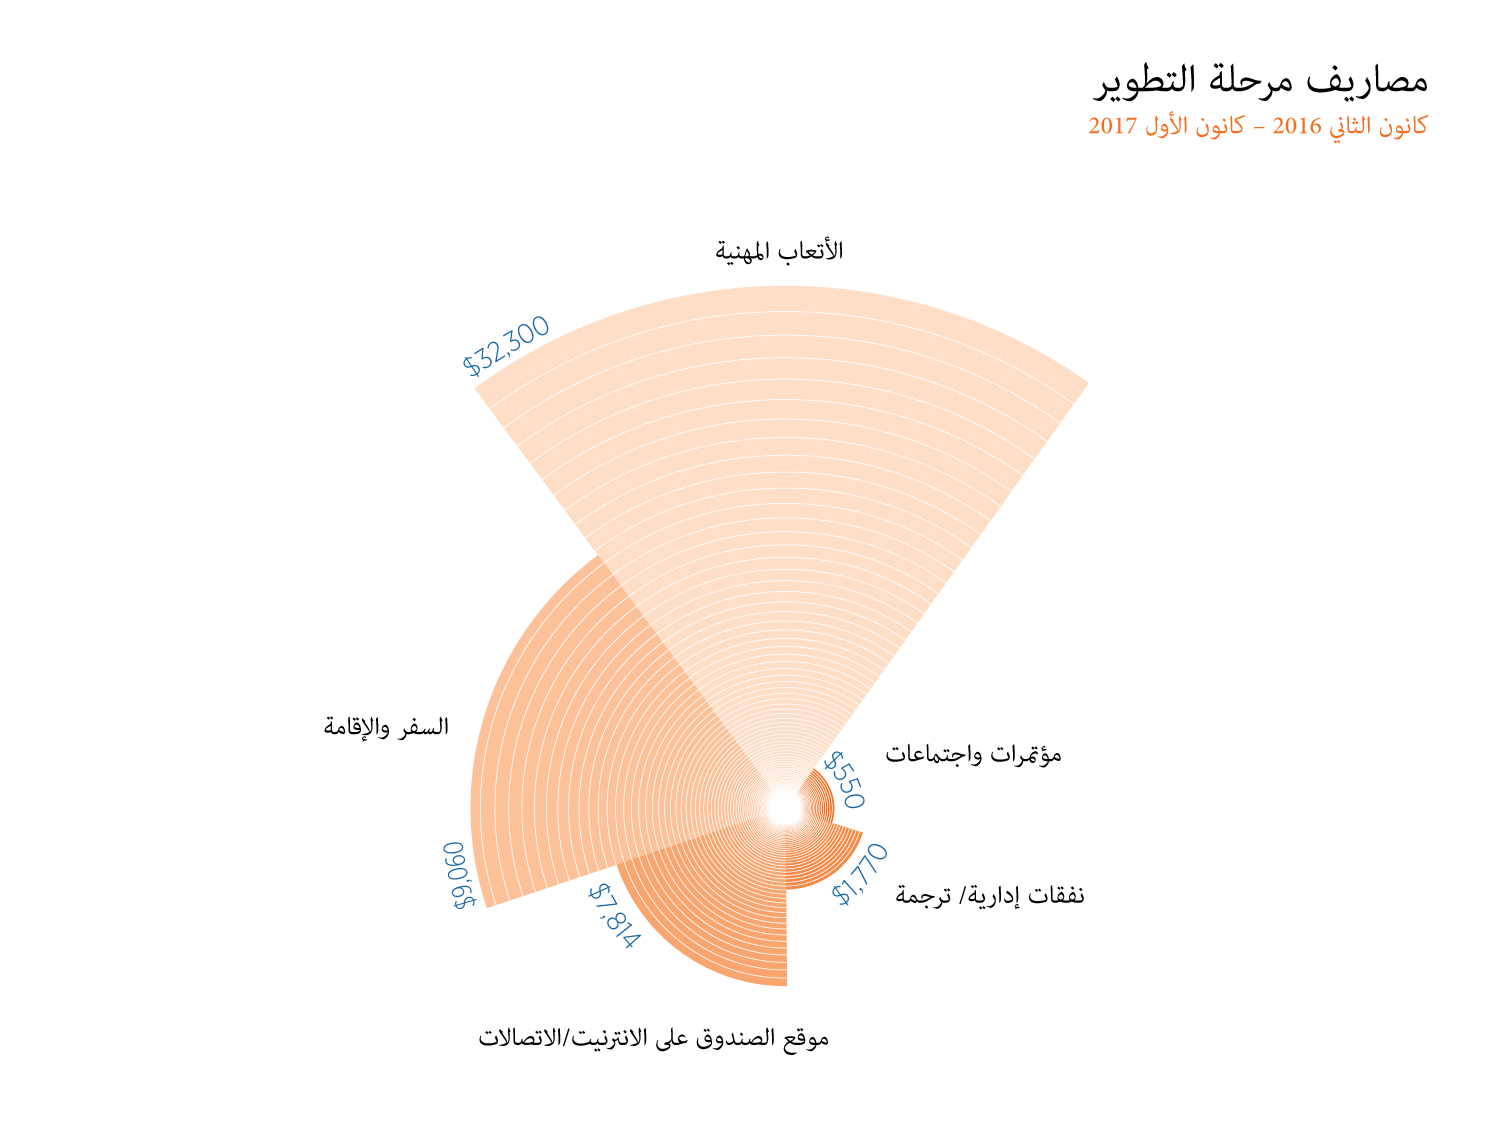 Rawa Development Phase Expenses Graph 2016-2017